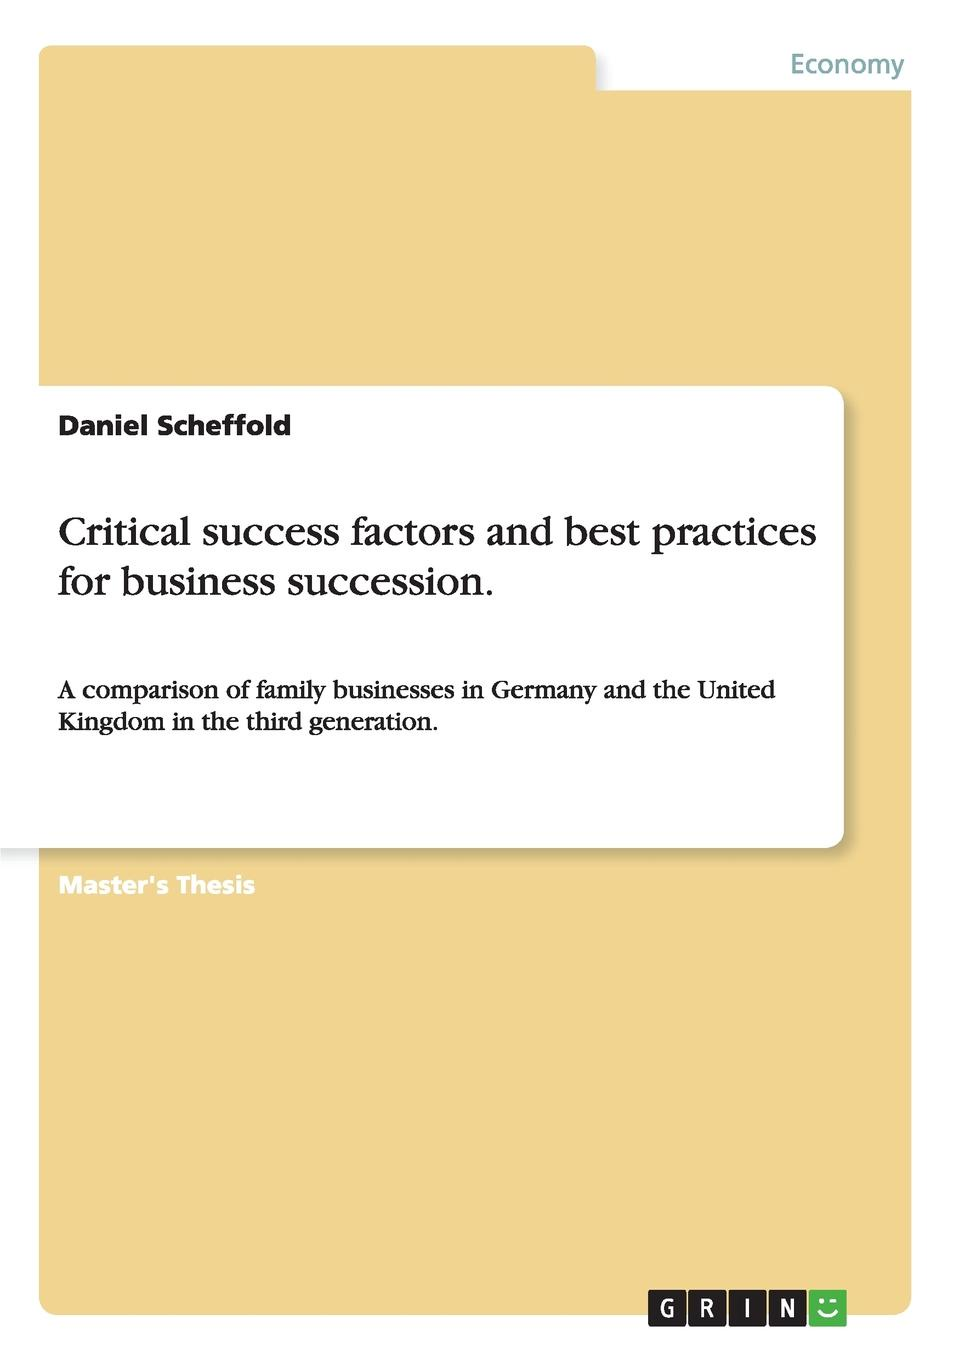 Daniel Scheffold Critical success factors and best practices for business succession. эдвард бульвер литтон the caxtons a family picture volume 03